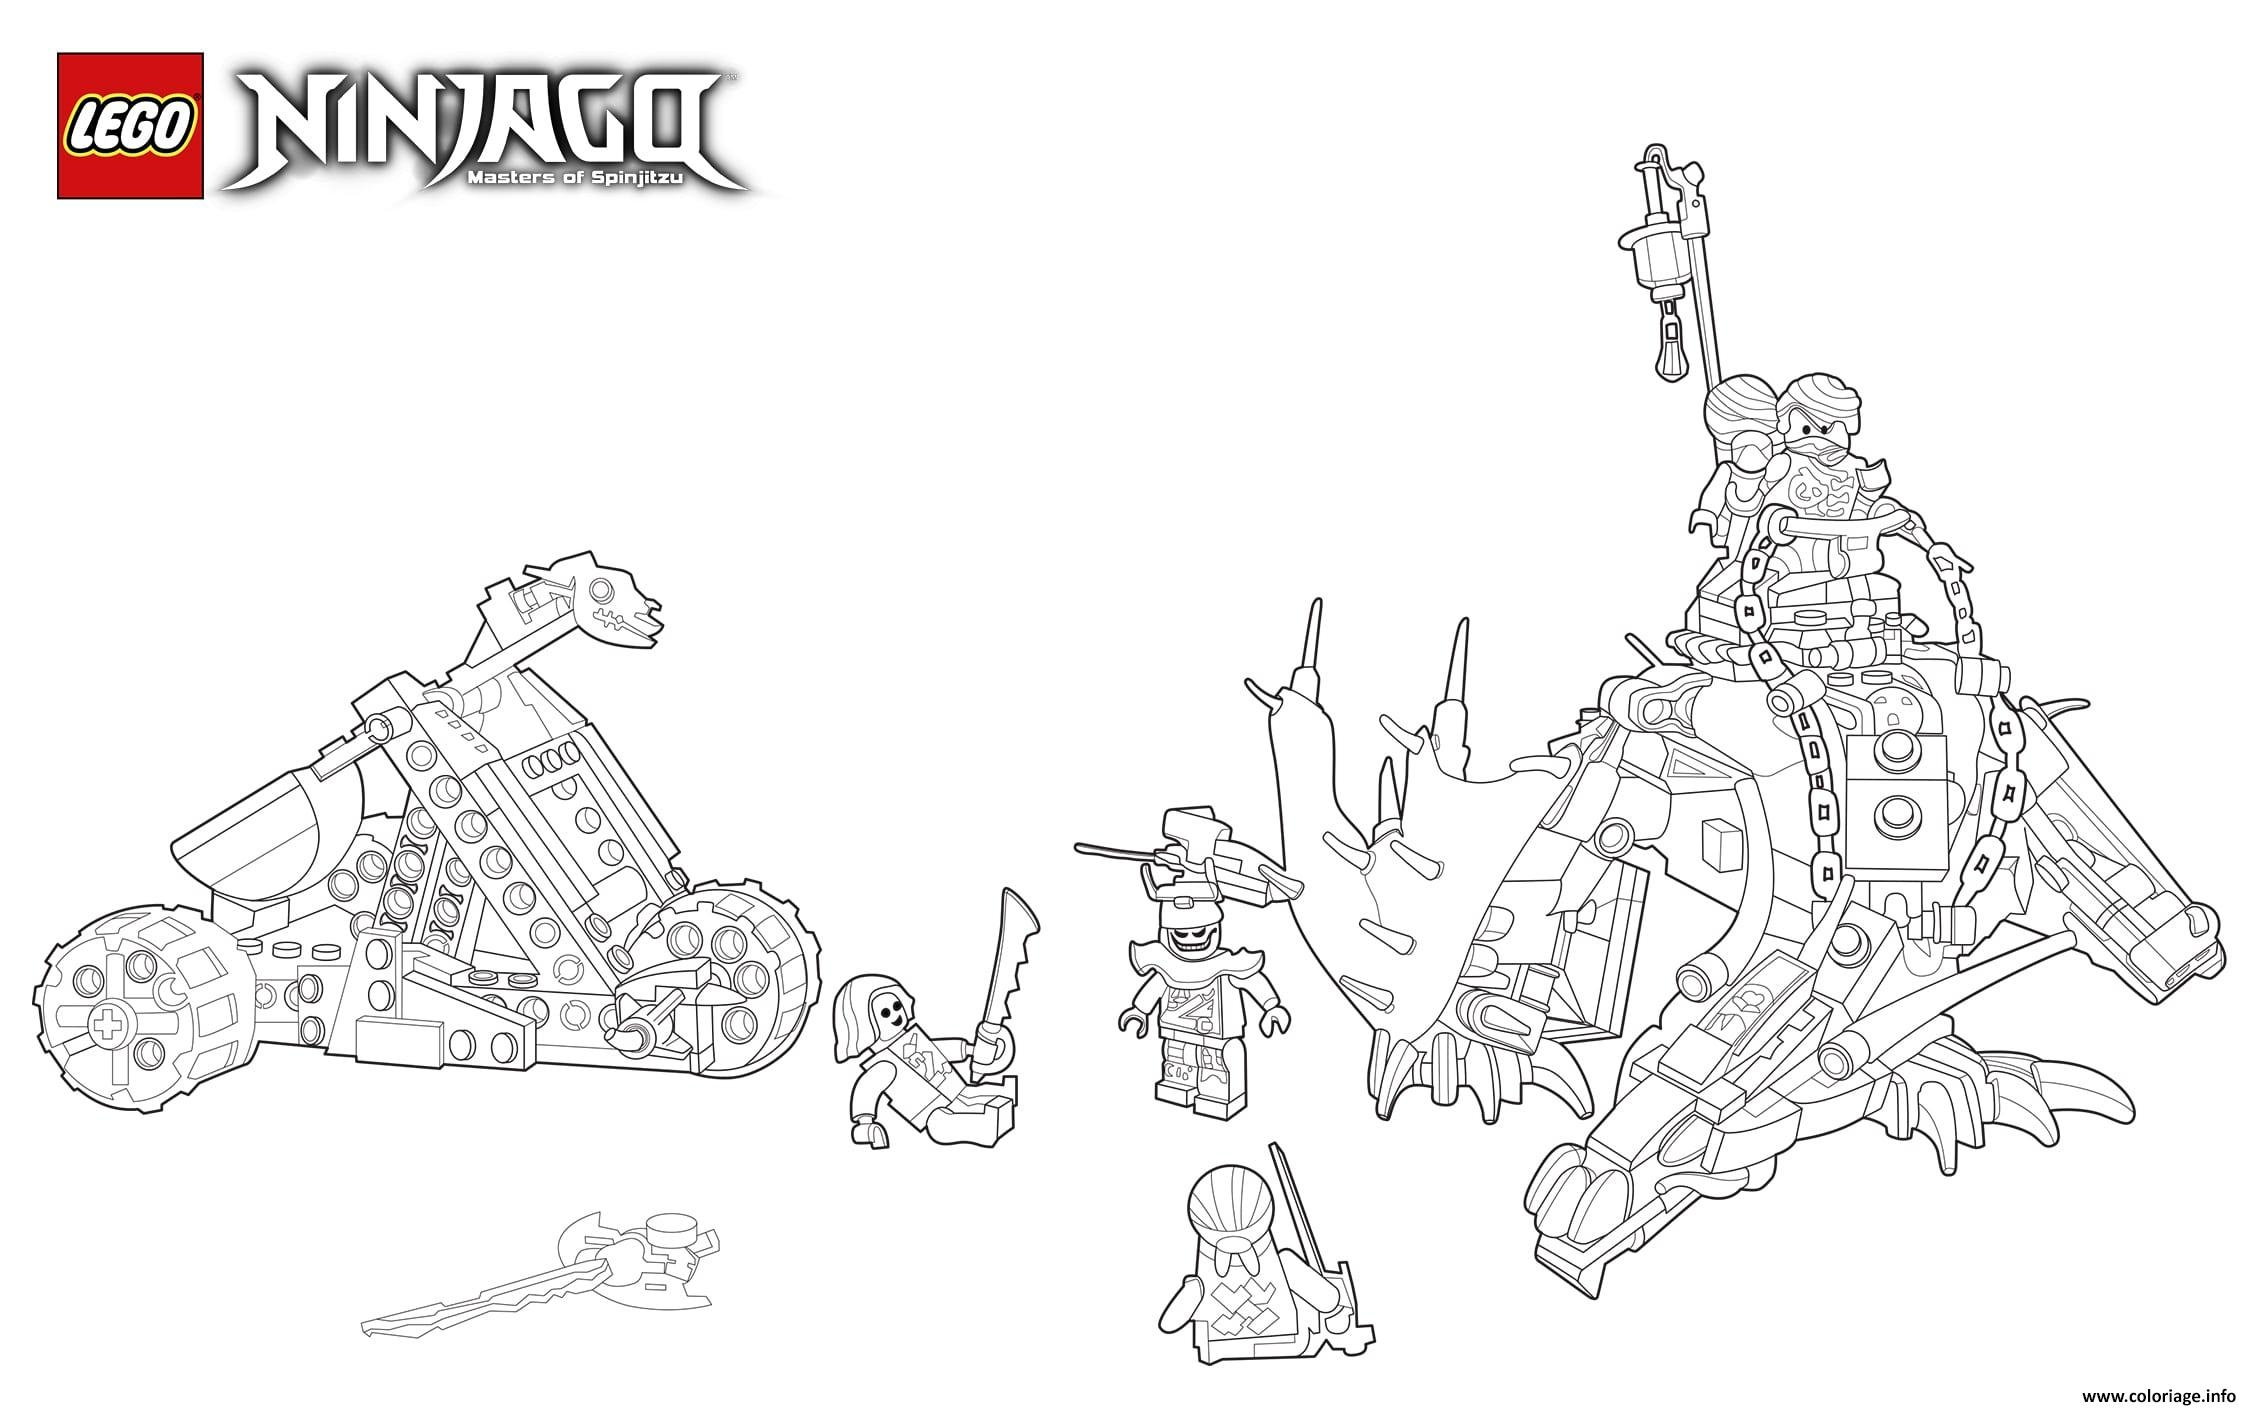 23 Ninjago Jay Coloring Pages Selection | FREE COLORING PAGES - Part 2